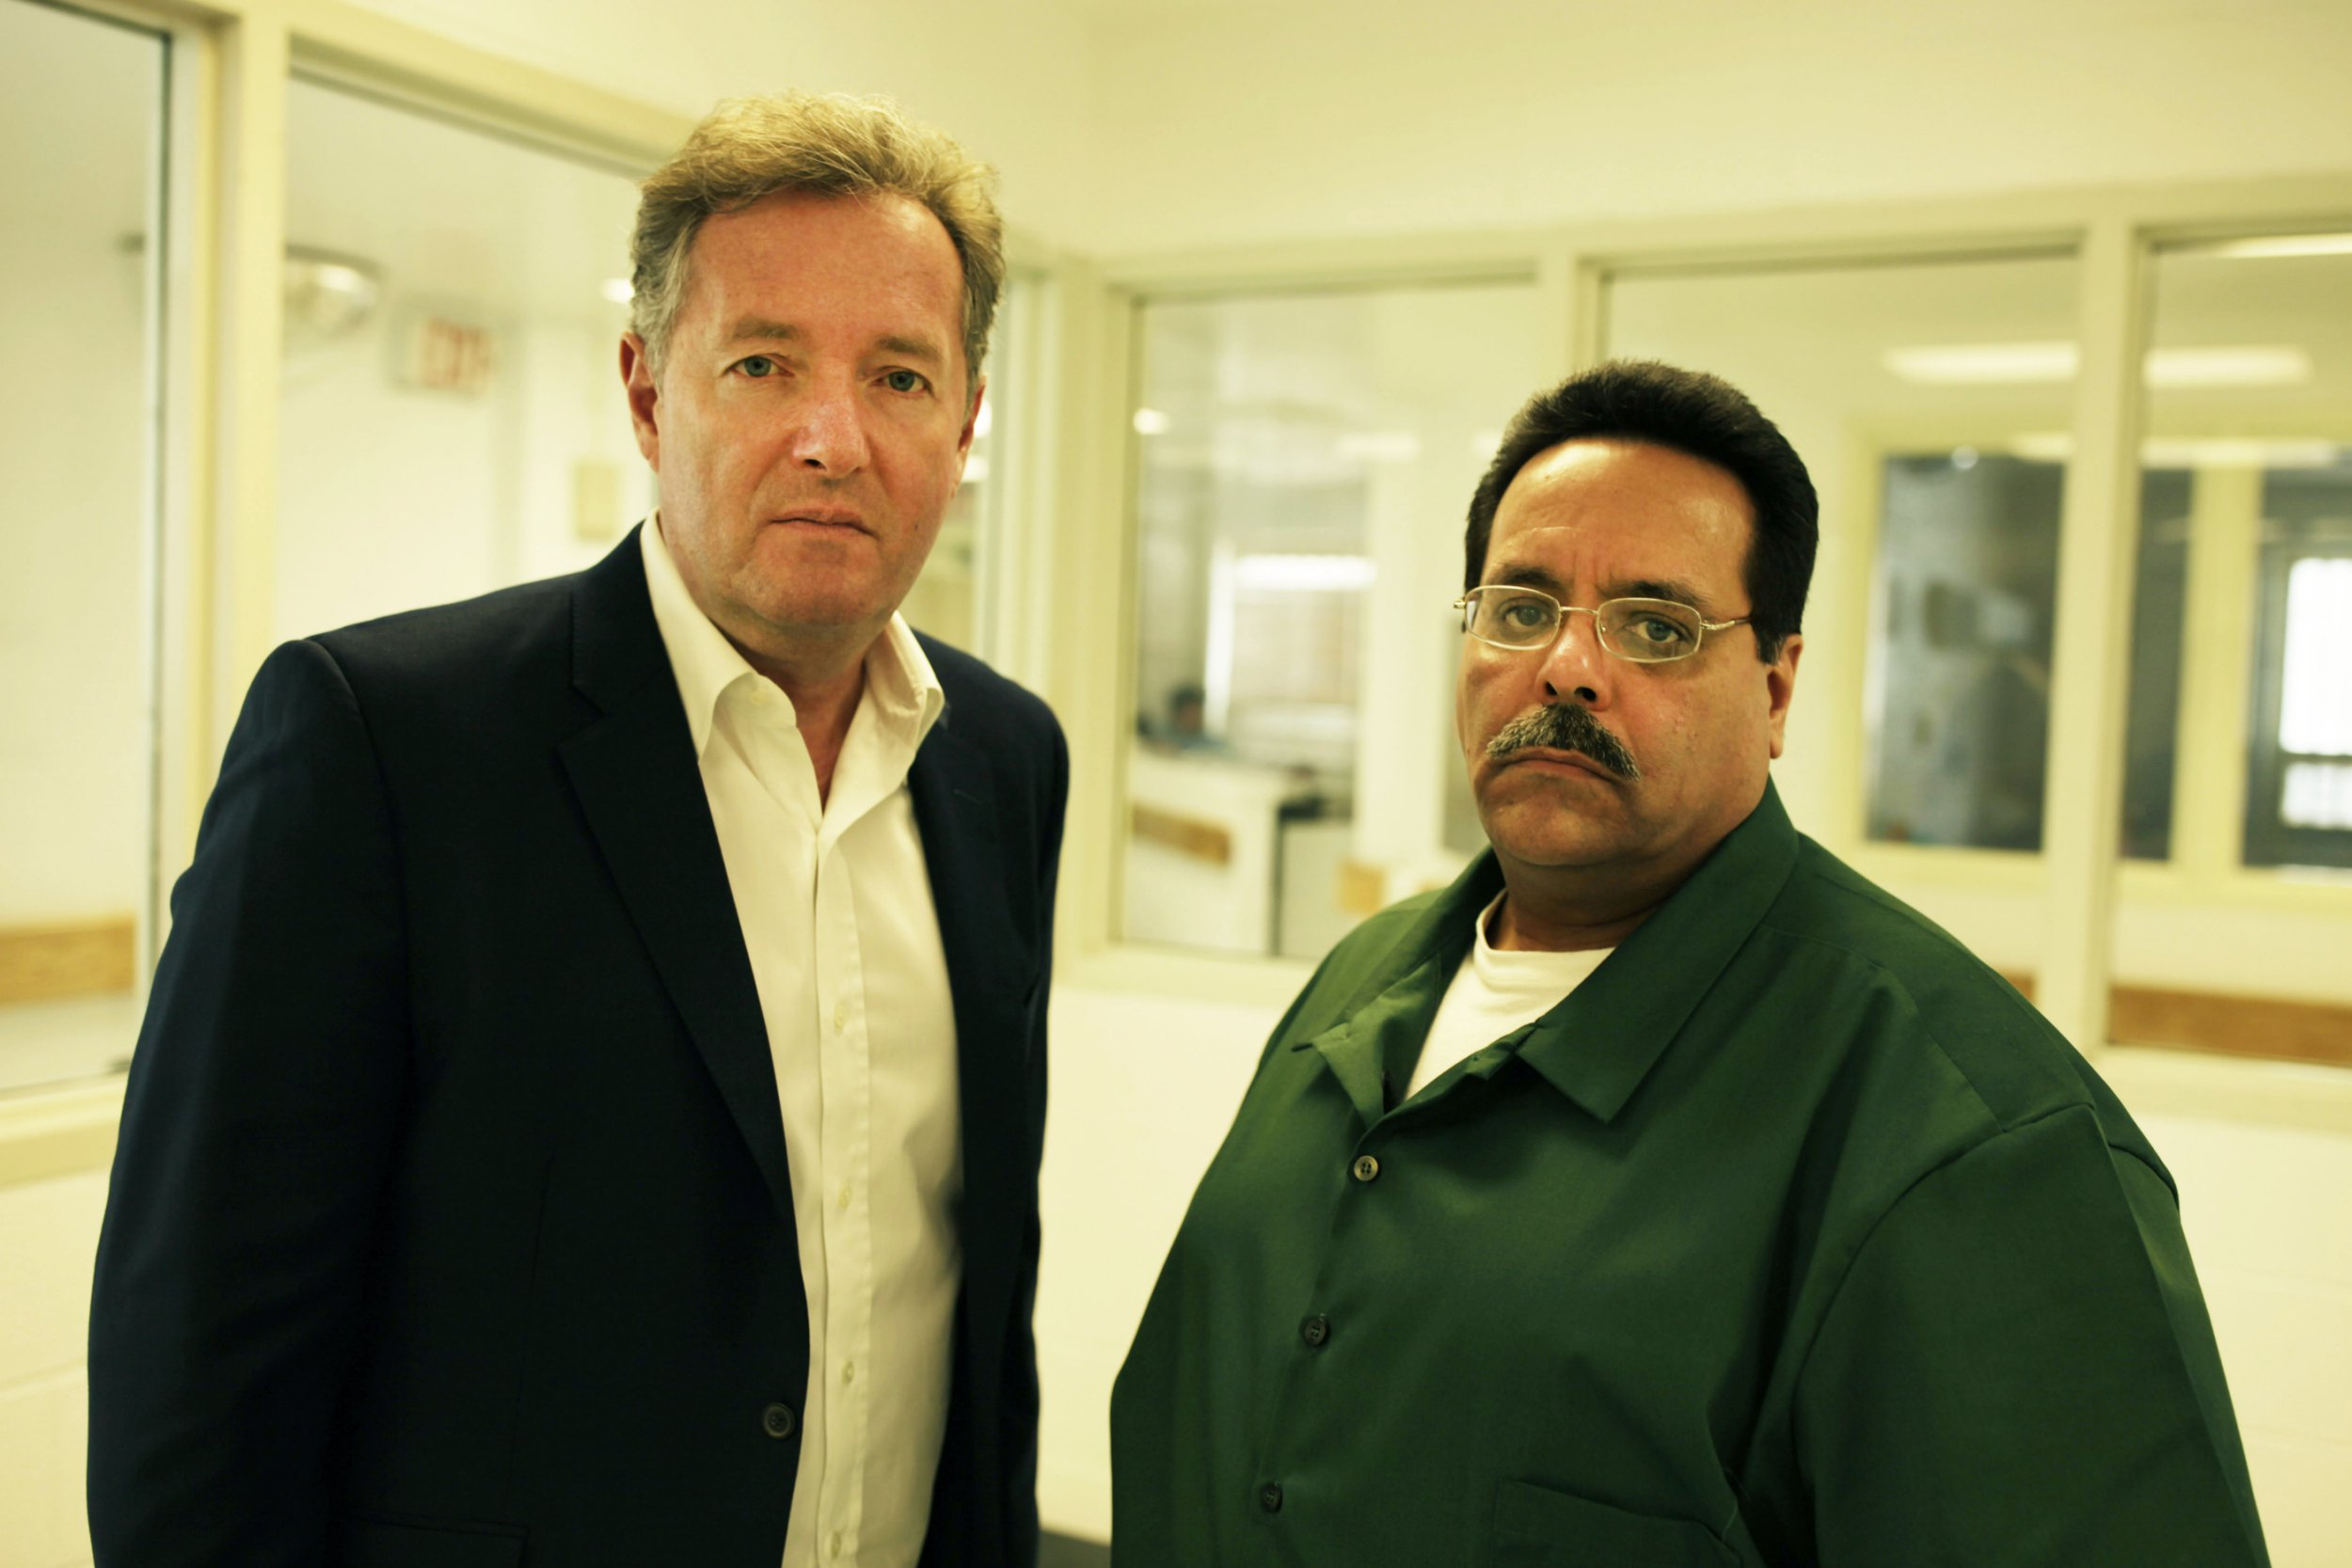 EMBARGOED PICTURE: FOR PUBLICATION FROM TUESDAY 4TH SEPTEMBER 2018 From Plum Pictures SERIAL KILLER WITH PIERS MORGAN Thursday 13th September 2018 on ITV Pictured: Pier Morgan with convicted serial killer Alex Henriquez at the Sullivan Correctional Facility in New York State In this new documentary which is part of ITV?s Crime & Punishment season, Piers Morgan goes behind bars to find the truth about a serial killer called Alex Henriquez, who is serving 75 years for three murders yet maintains his innocence. Henriquez, convicted nearly 30 years ago for murdering two girls aged 10 and 14 and a 21-year-old woman in New York has never spoken publicly about his crimes, and Piers aims to get beneath his lies and deceit to uncover the real story.